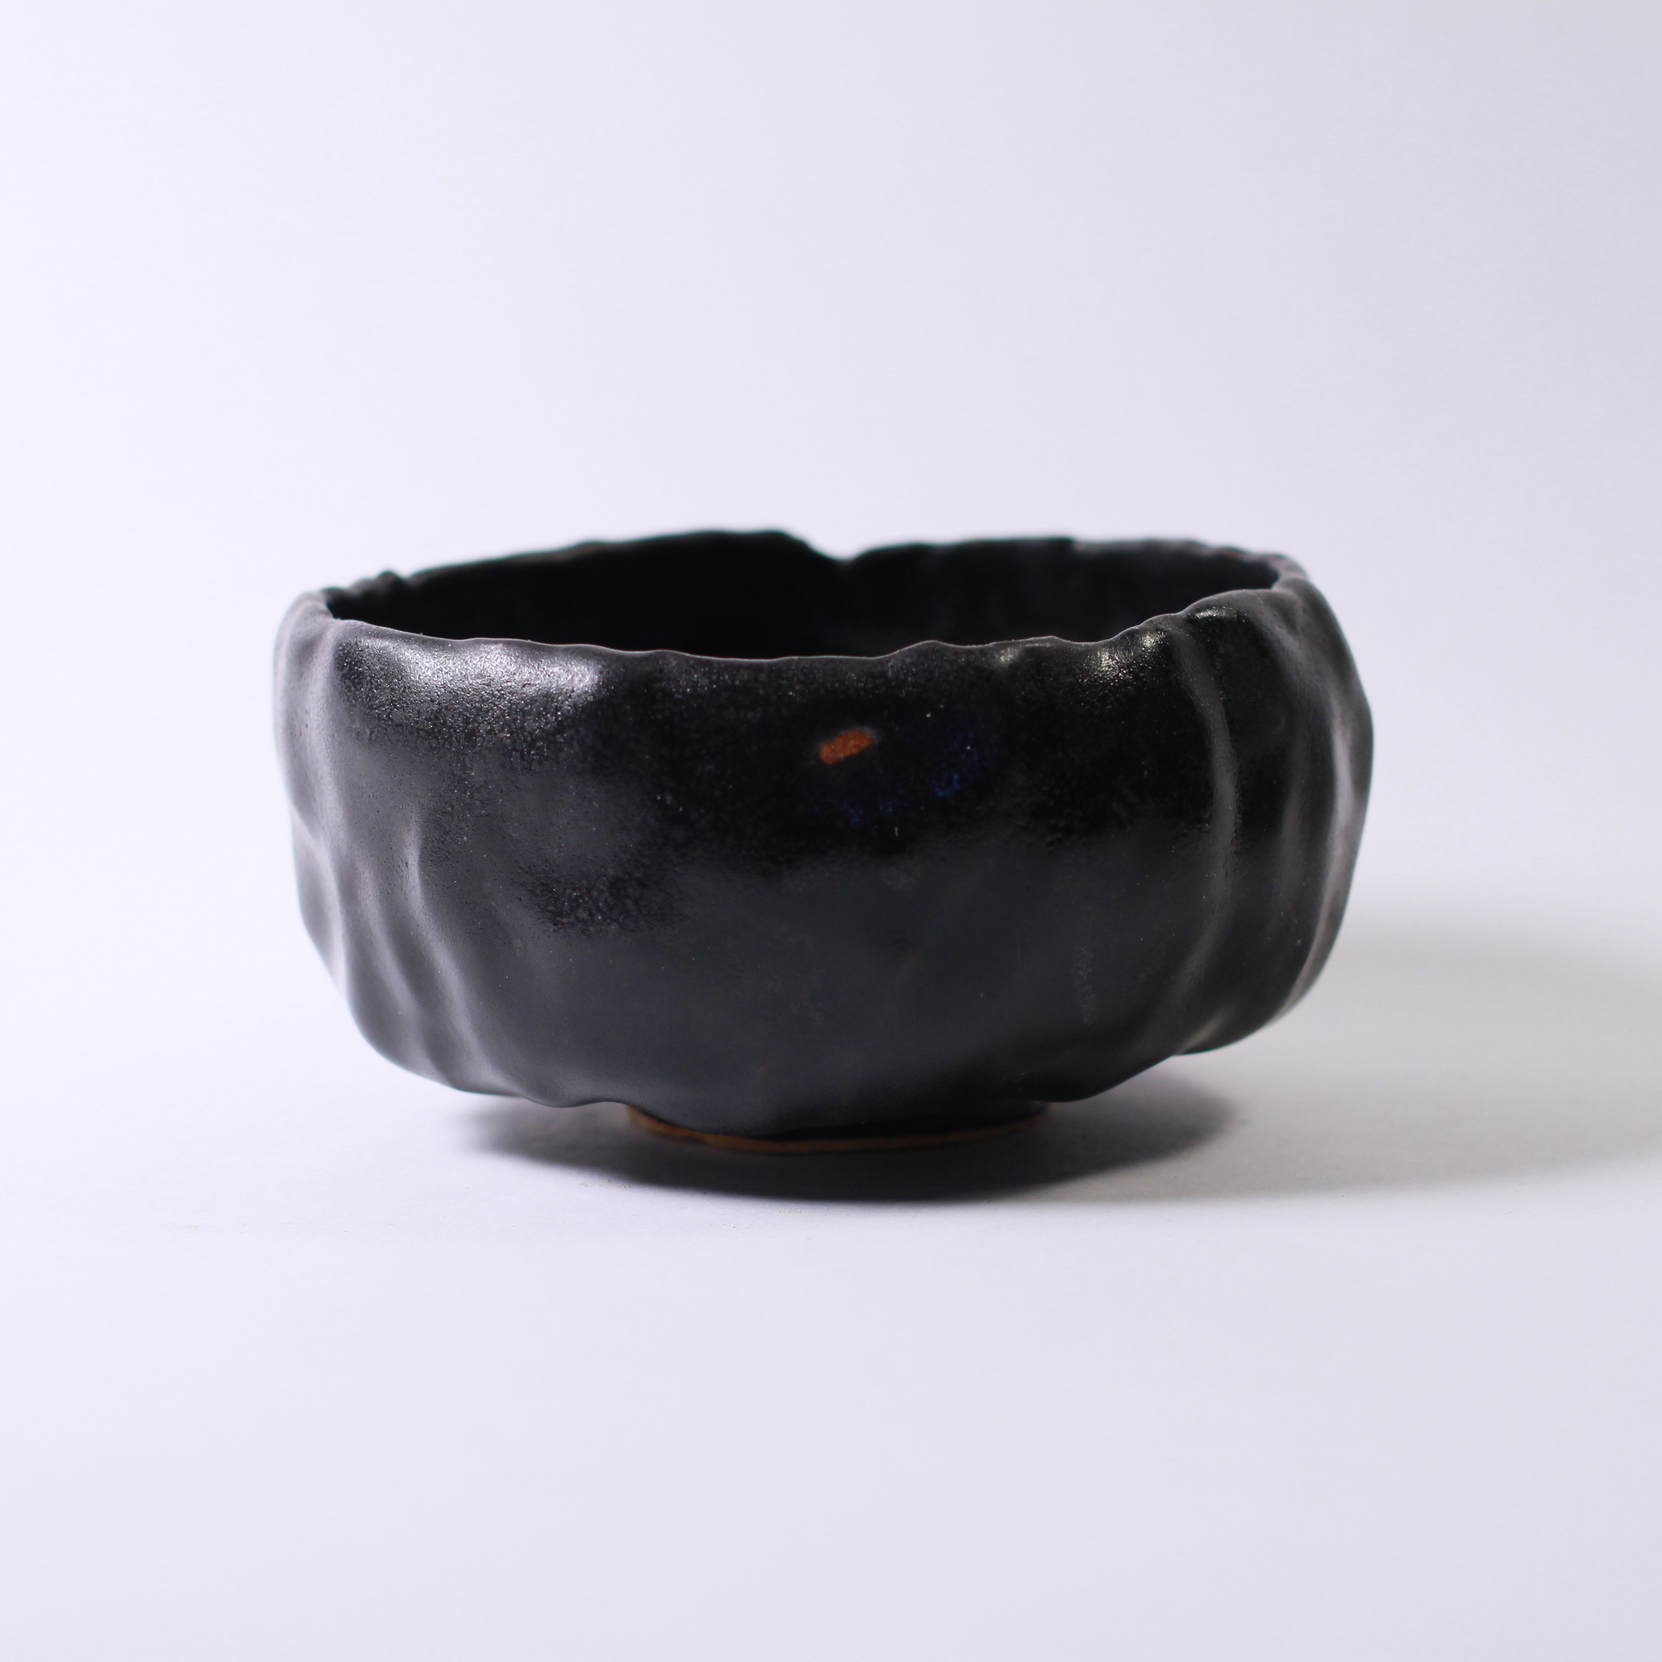 Black Objects And Others /黑之器與其餘- 2015